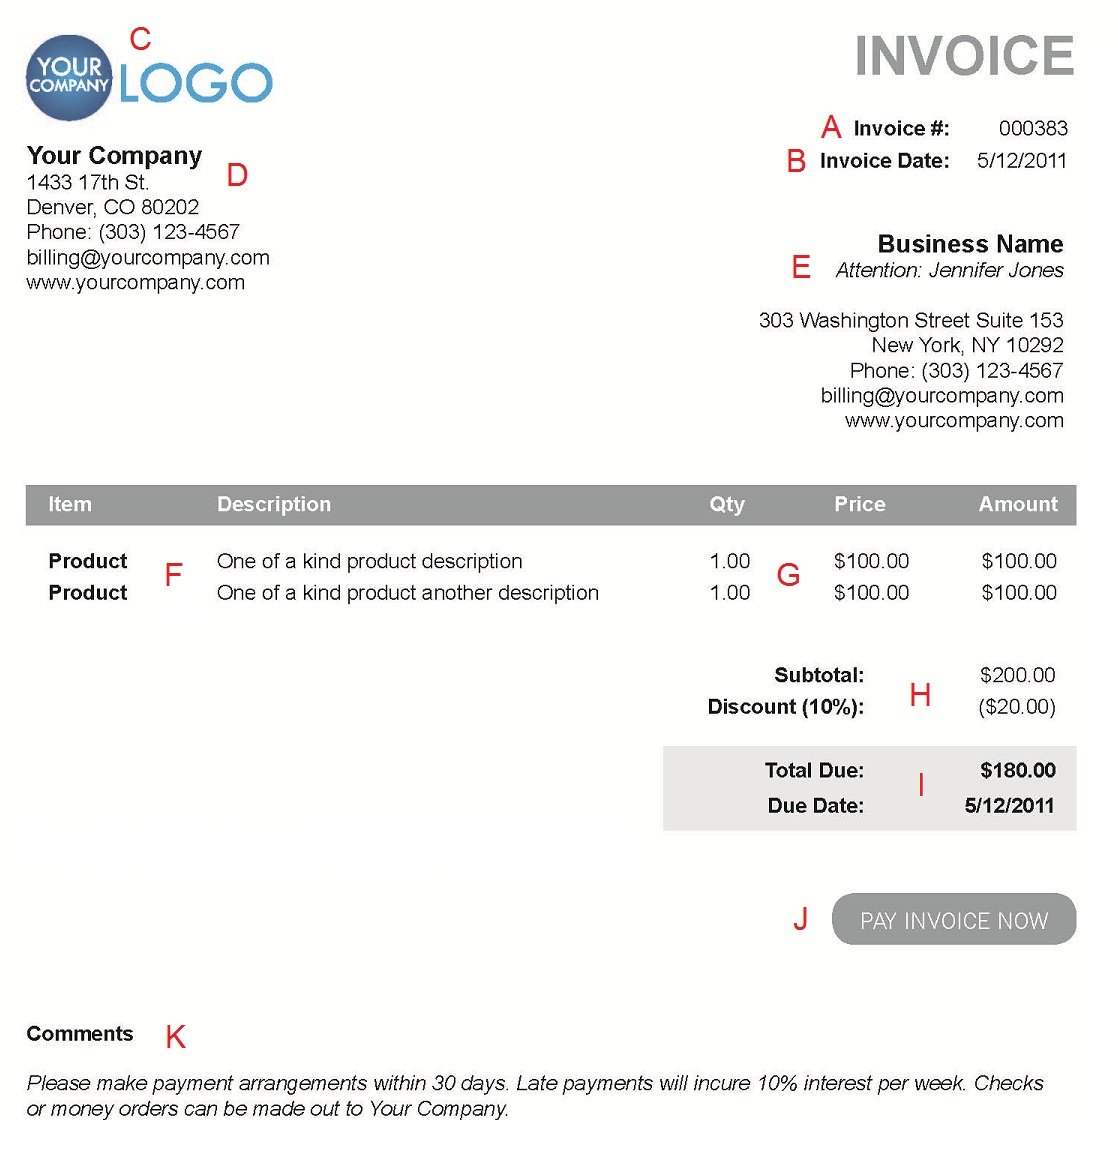 Pigbrotherus  Personable The  Different Sections Of An Electronic Payment Invoice With Excellent A  With Endearing Invoice Of Purchase Also Sugarcrm Invoice In Addition Sample Of Invoice Template And Invoices Management As Well As Training Invoice Additionally Invoice In English From Paysimplecom With Pigbrotherus  Excellent The  Different Sections Of An Electronic Payment Invoice With Endearing A  And Personable Invoice Of Purchase Also Sugarcrm Invoice In Addition Sample Of Invoice Template From Paysimplecom